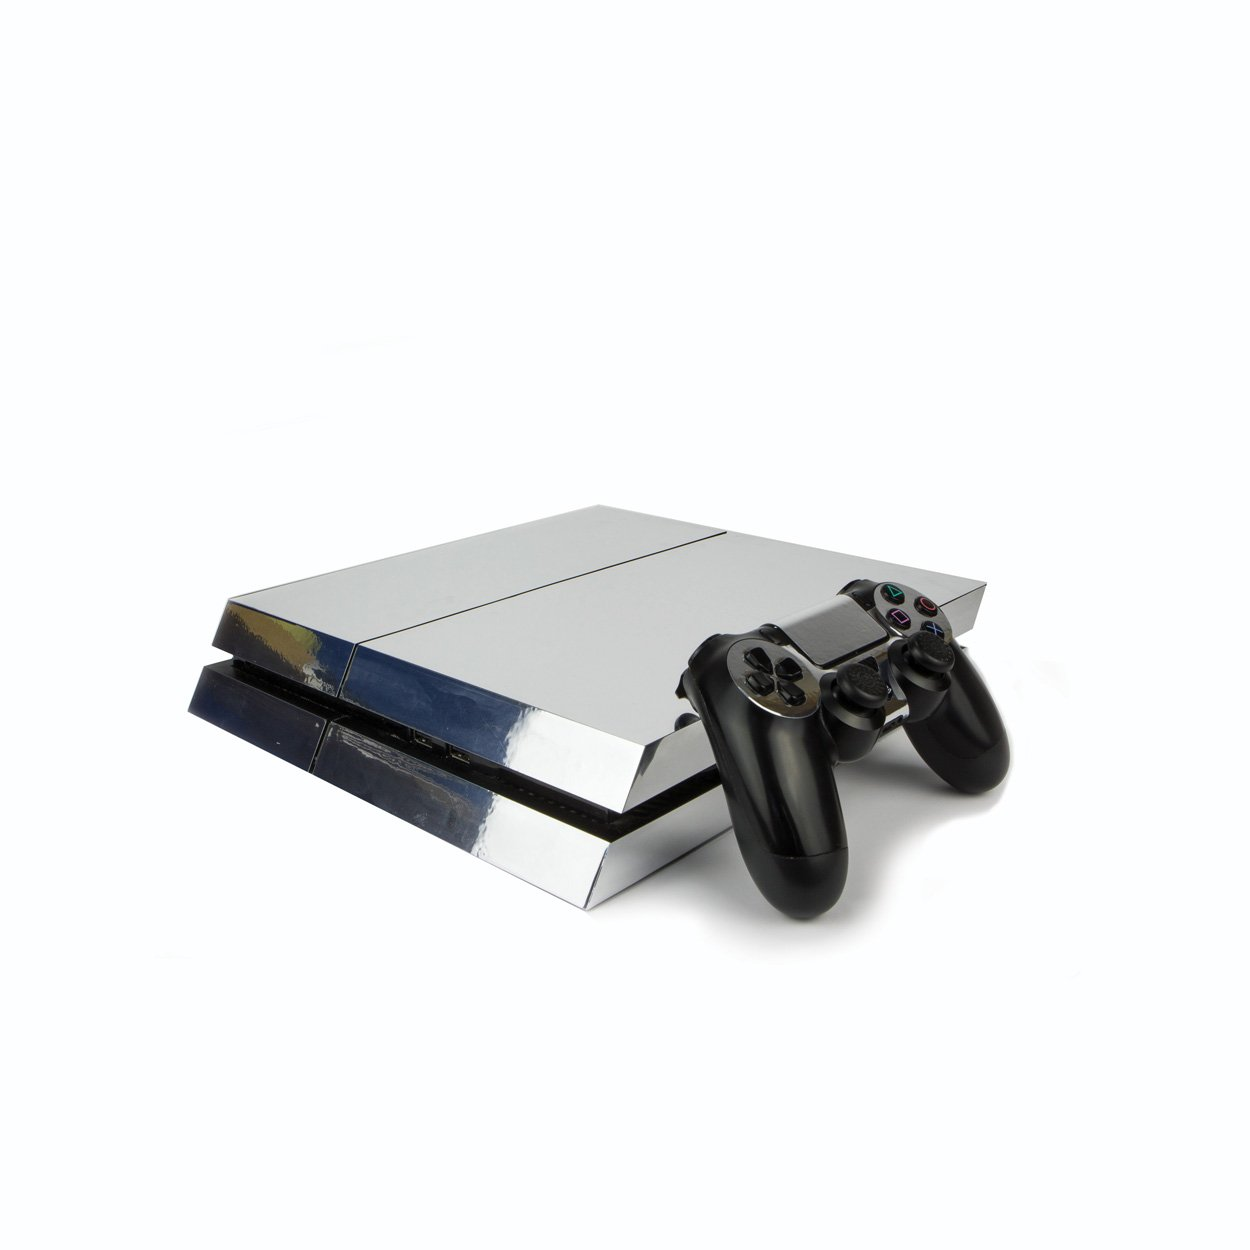 Premium PS4 PlayStation 4 Metallic Vinyl Wrap / Skin / Cover for PS4 Console and PS4 Controllers: Chrome Silver